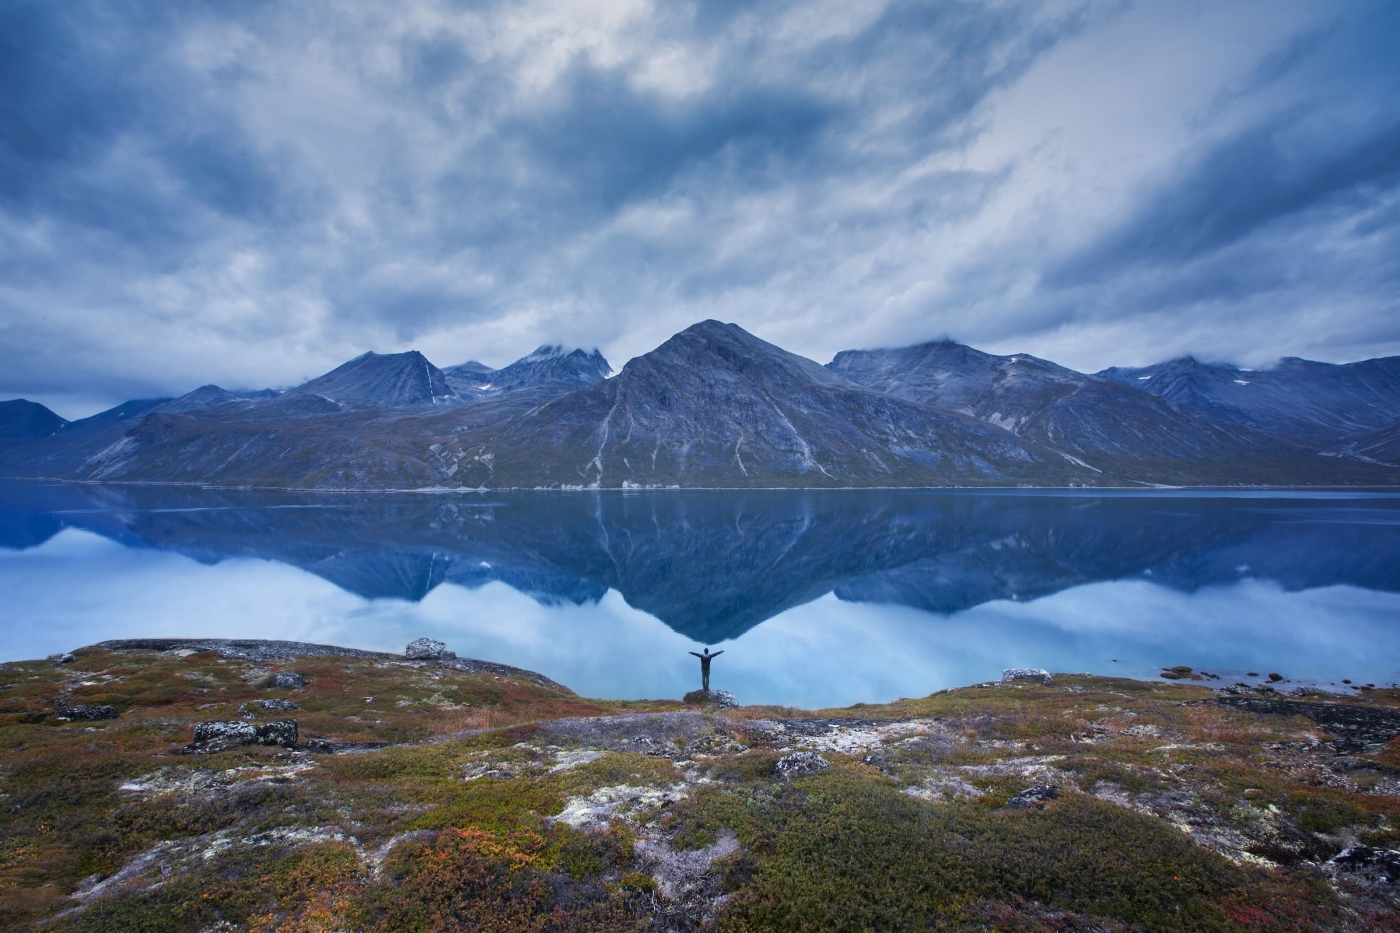 Solo hiker in South Greenland gives gratitude and a hug to Mother Earth for being so breathtaking. By Paul Zizka